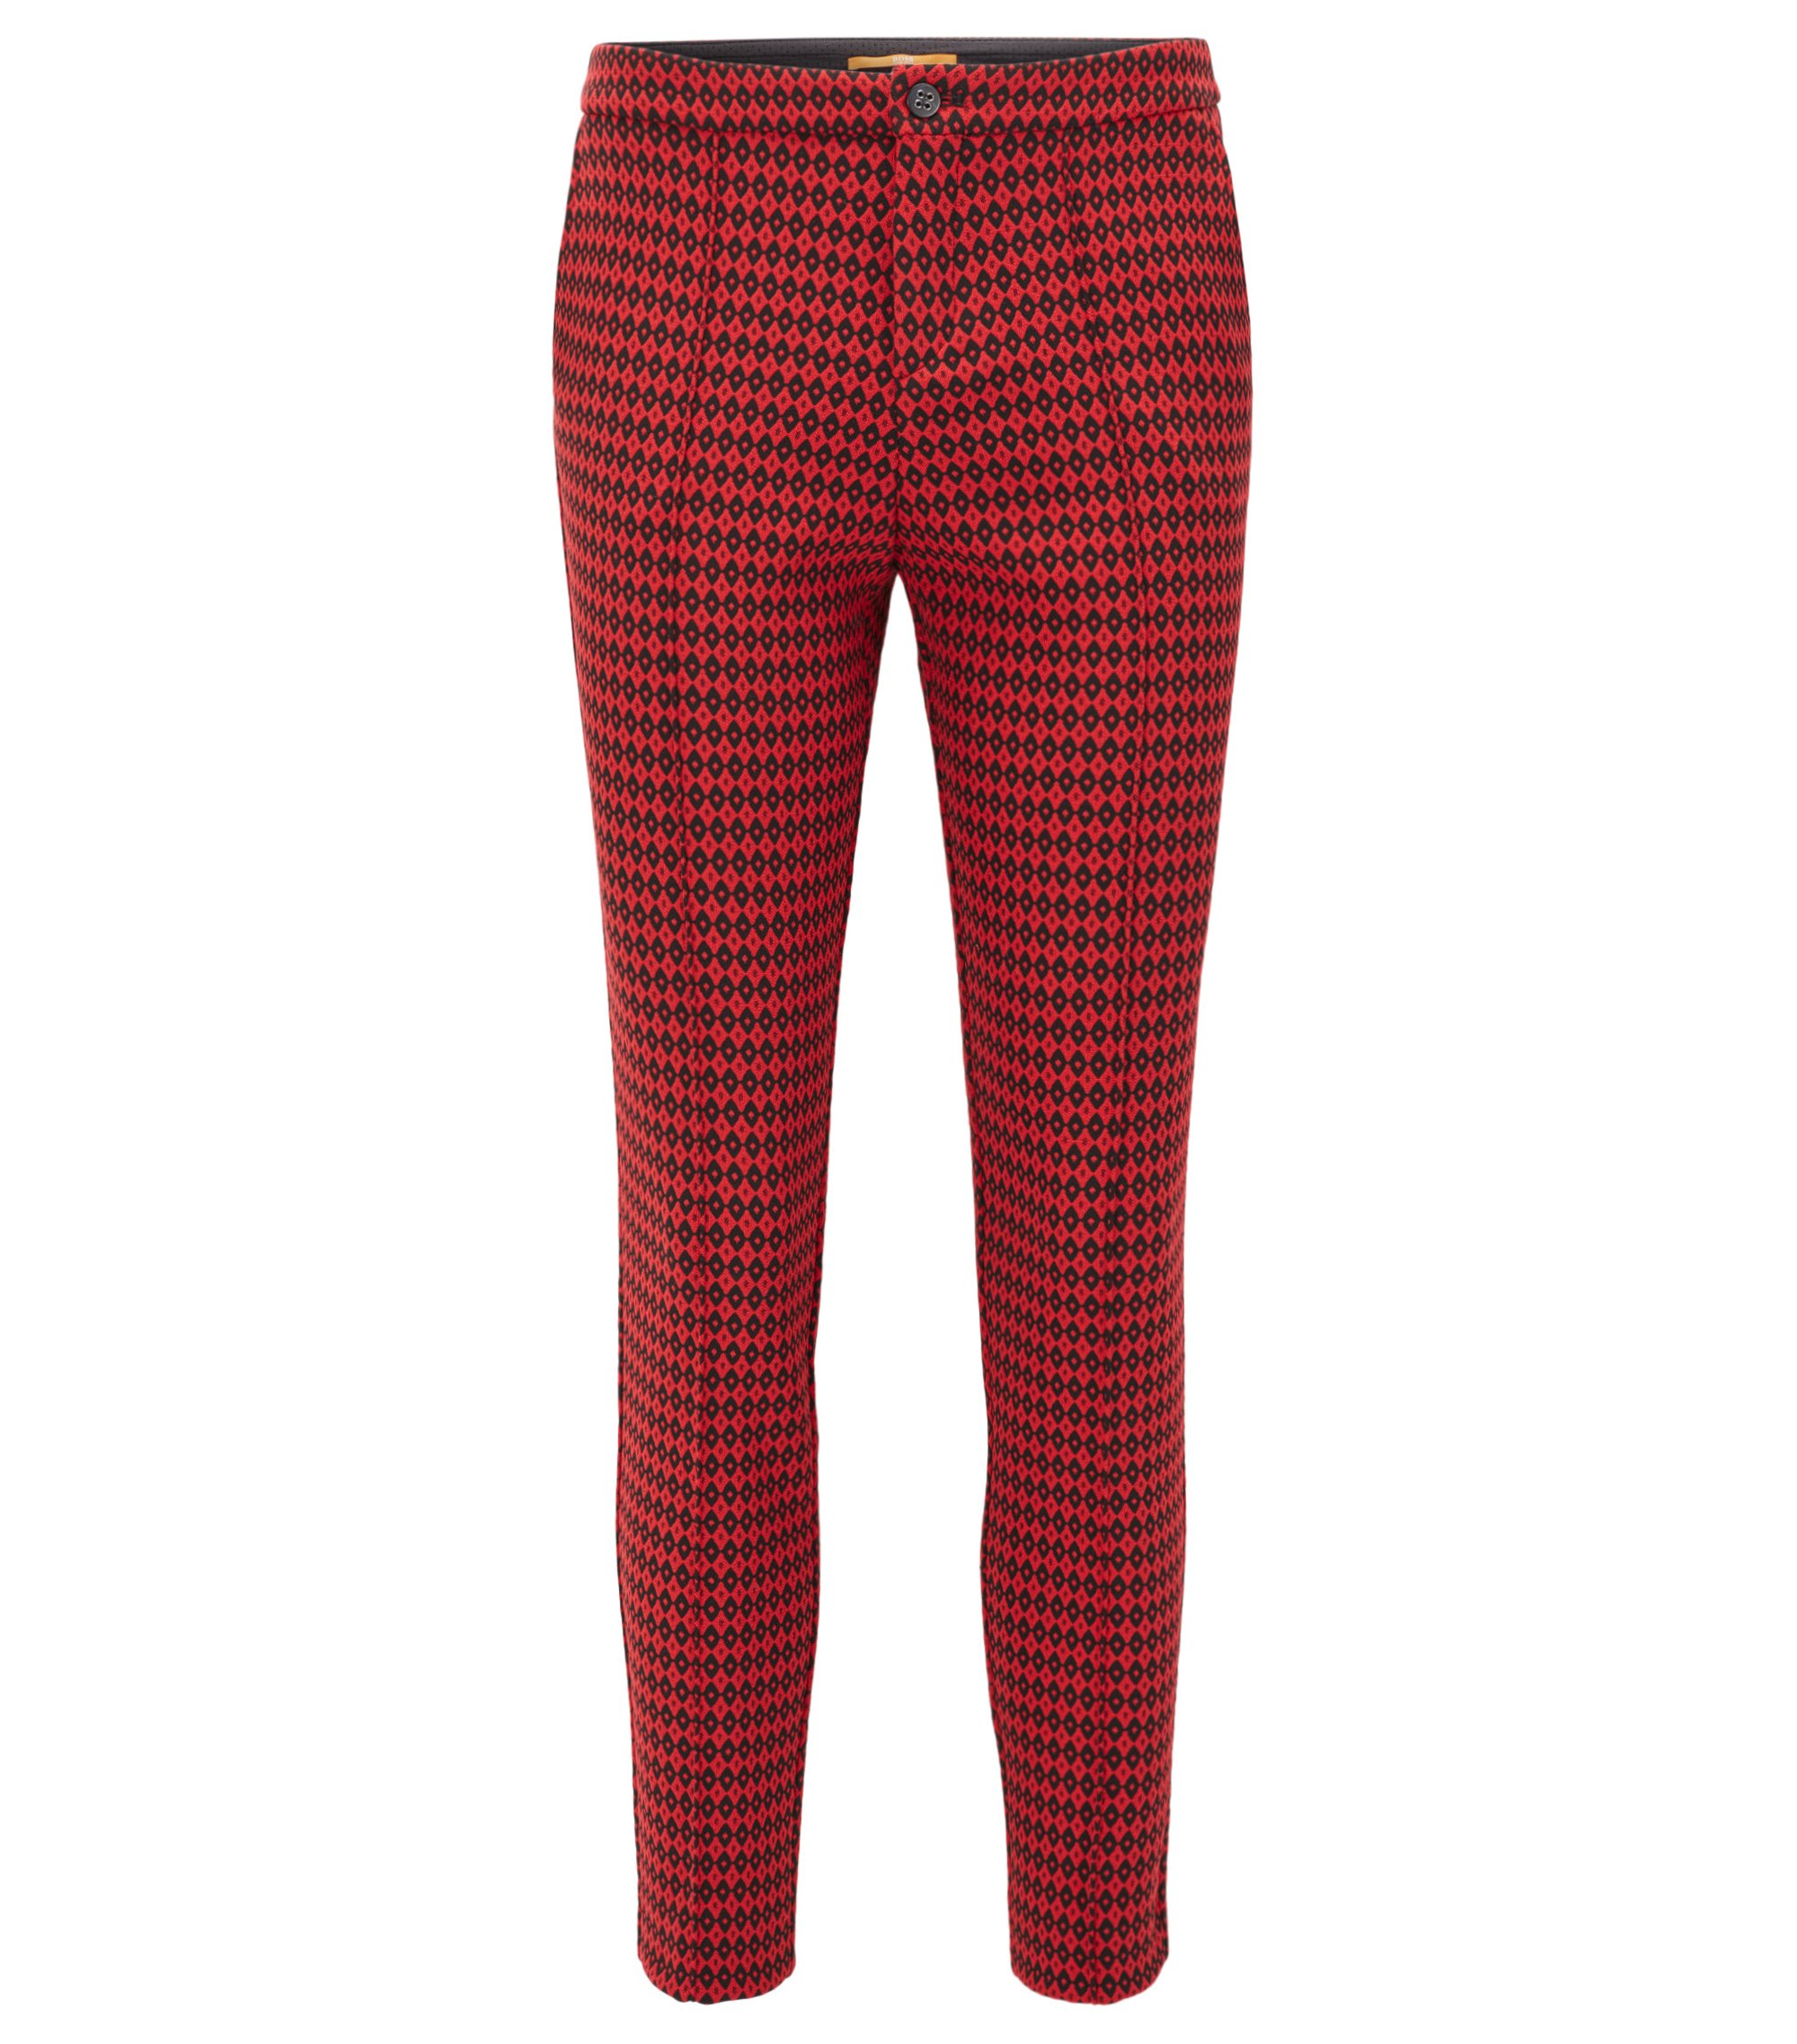 Pantalon Regular Fit en jacquard à motif, Fantaisie